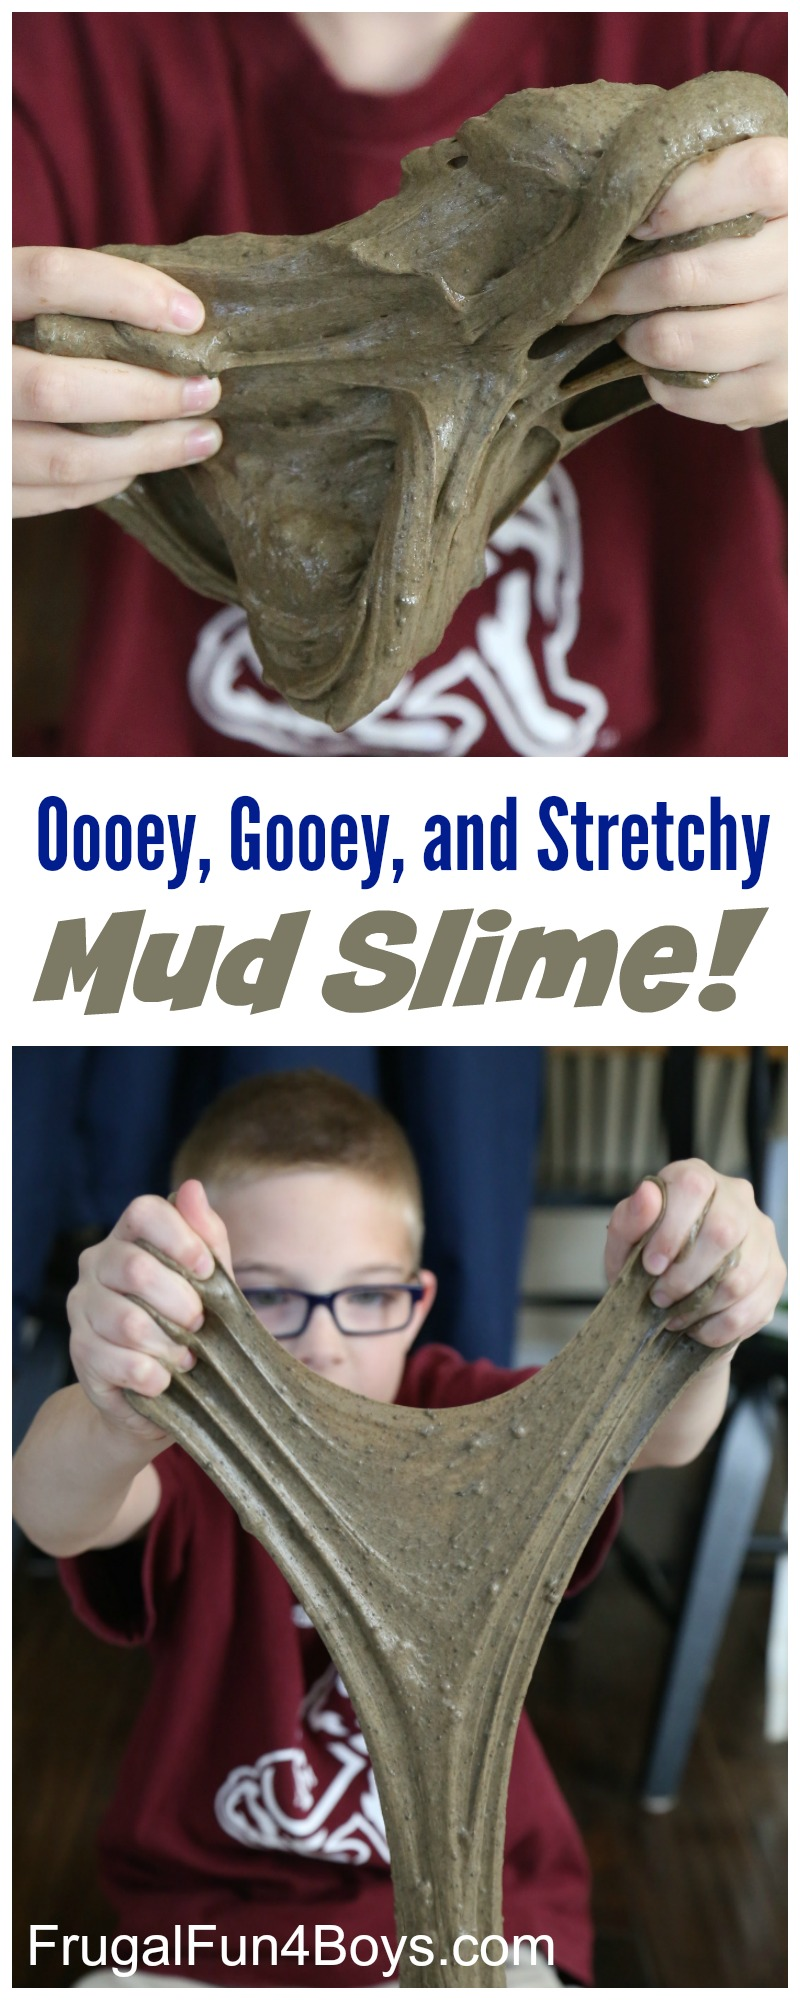 How to make oooey gooey stretchy mud slime frugal fun for boys how to make oooey gooey and stretchy mud slime ccuart Choice Image